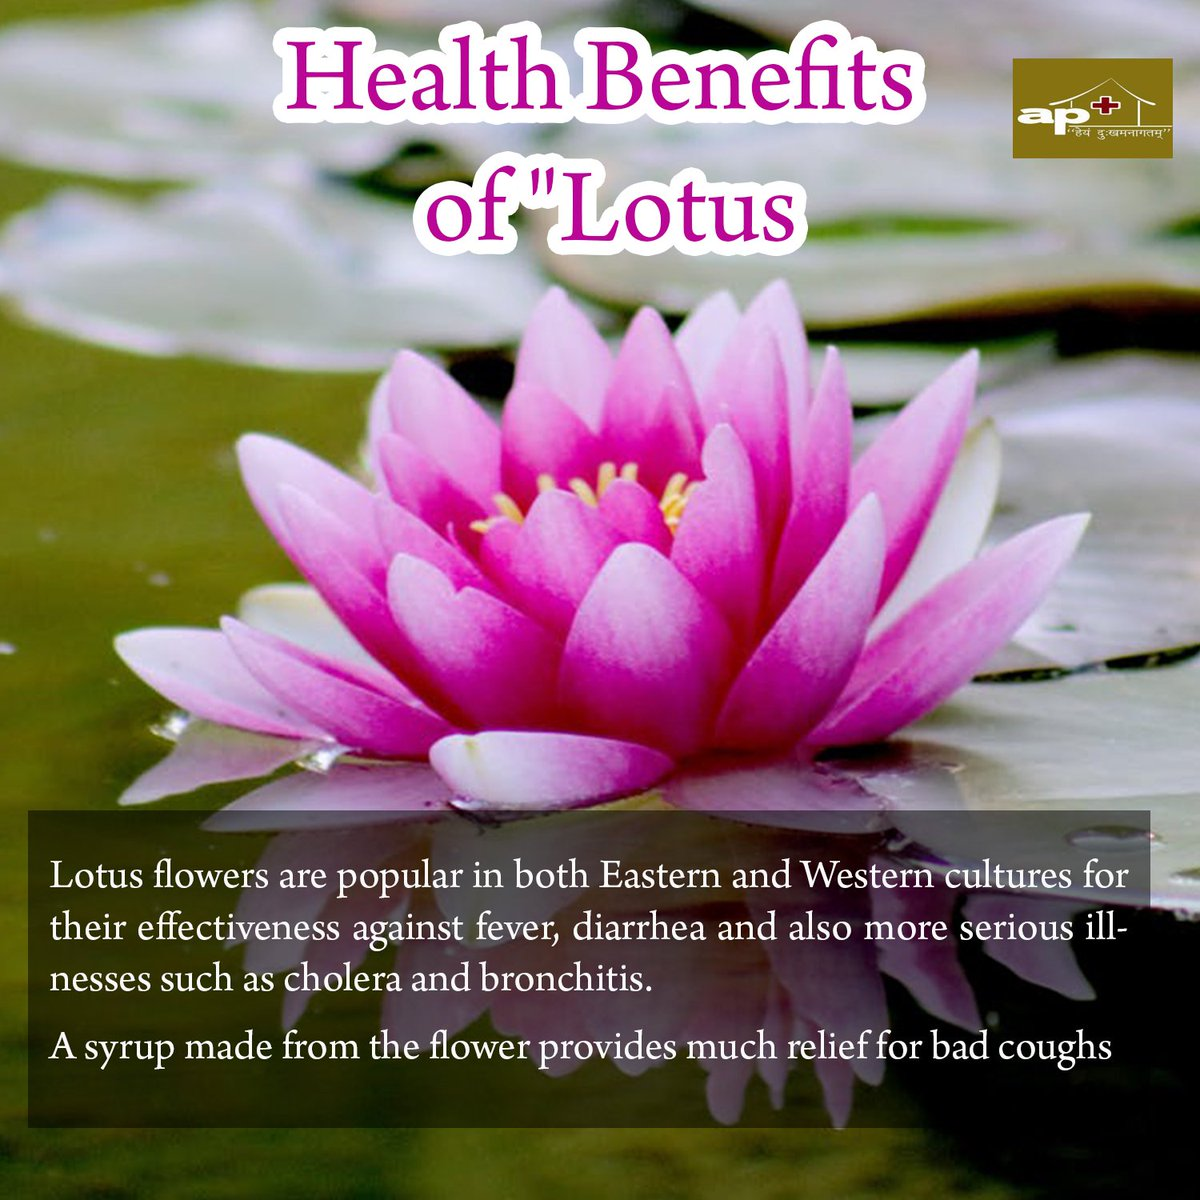 Draarti parimal on twitter health benefits of lotus httpst draarti parimal on twitter health benefits of lotus httpstuak4wqogxw healthbenefitsoflotus lotus healthbenefits bronchitis syrup flowers izmirmasajfo